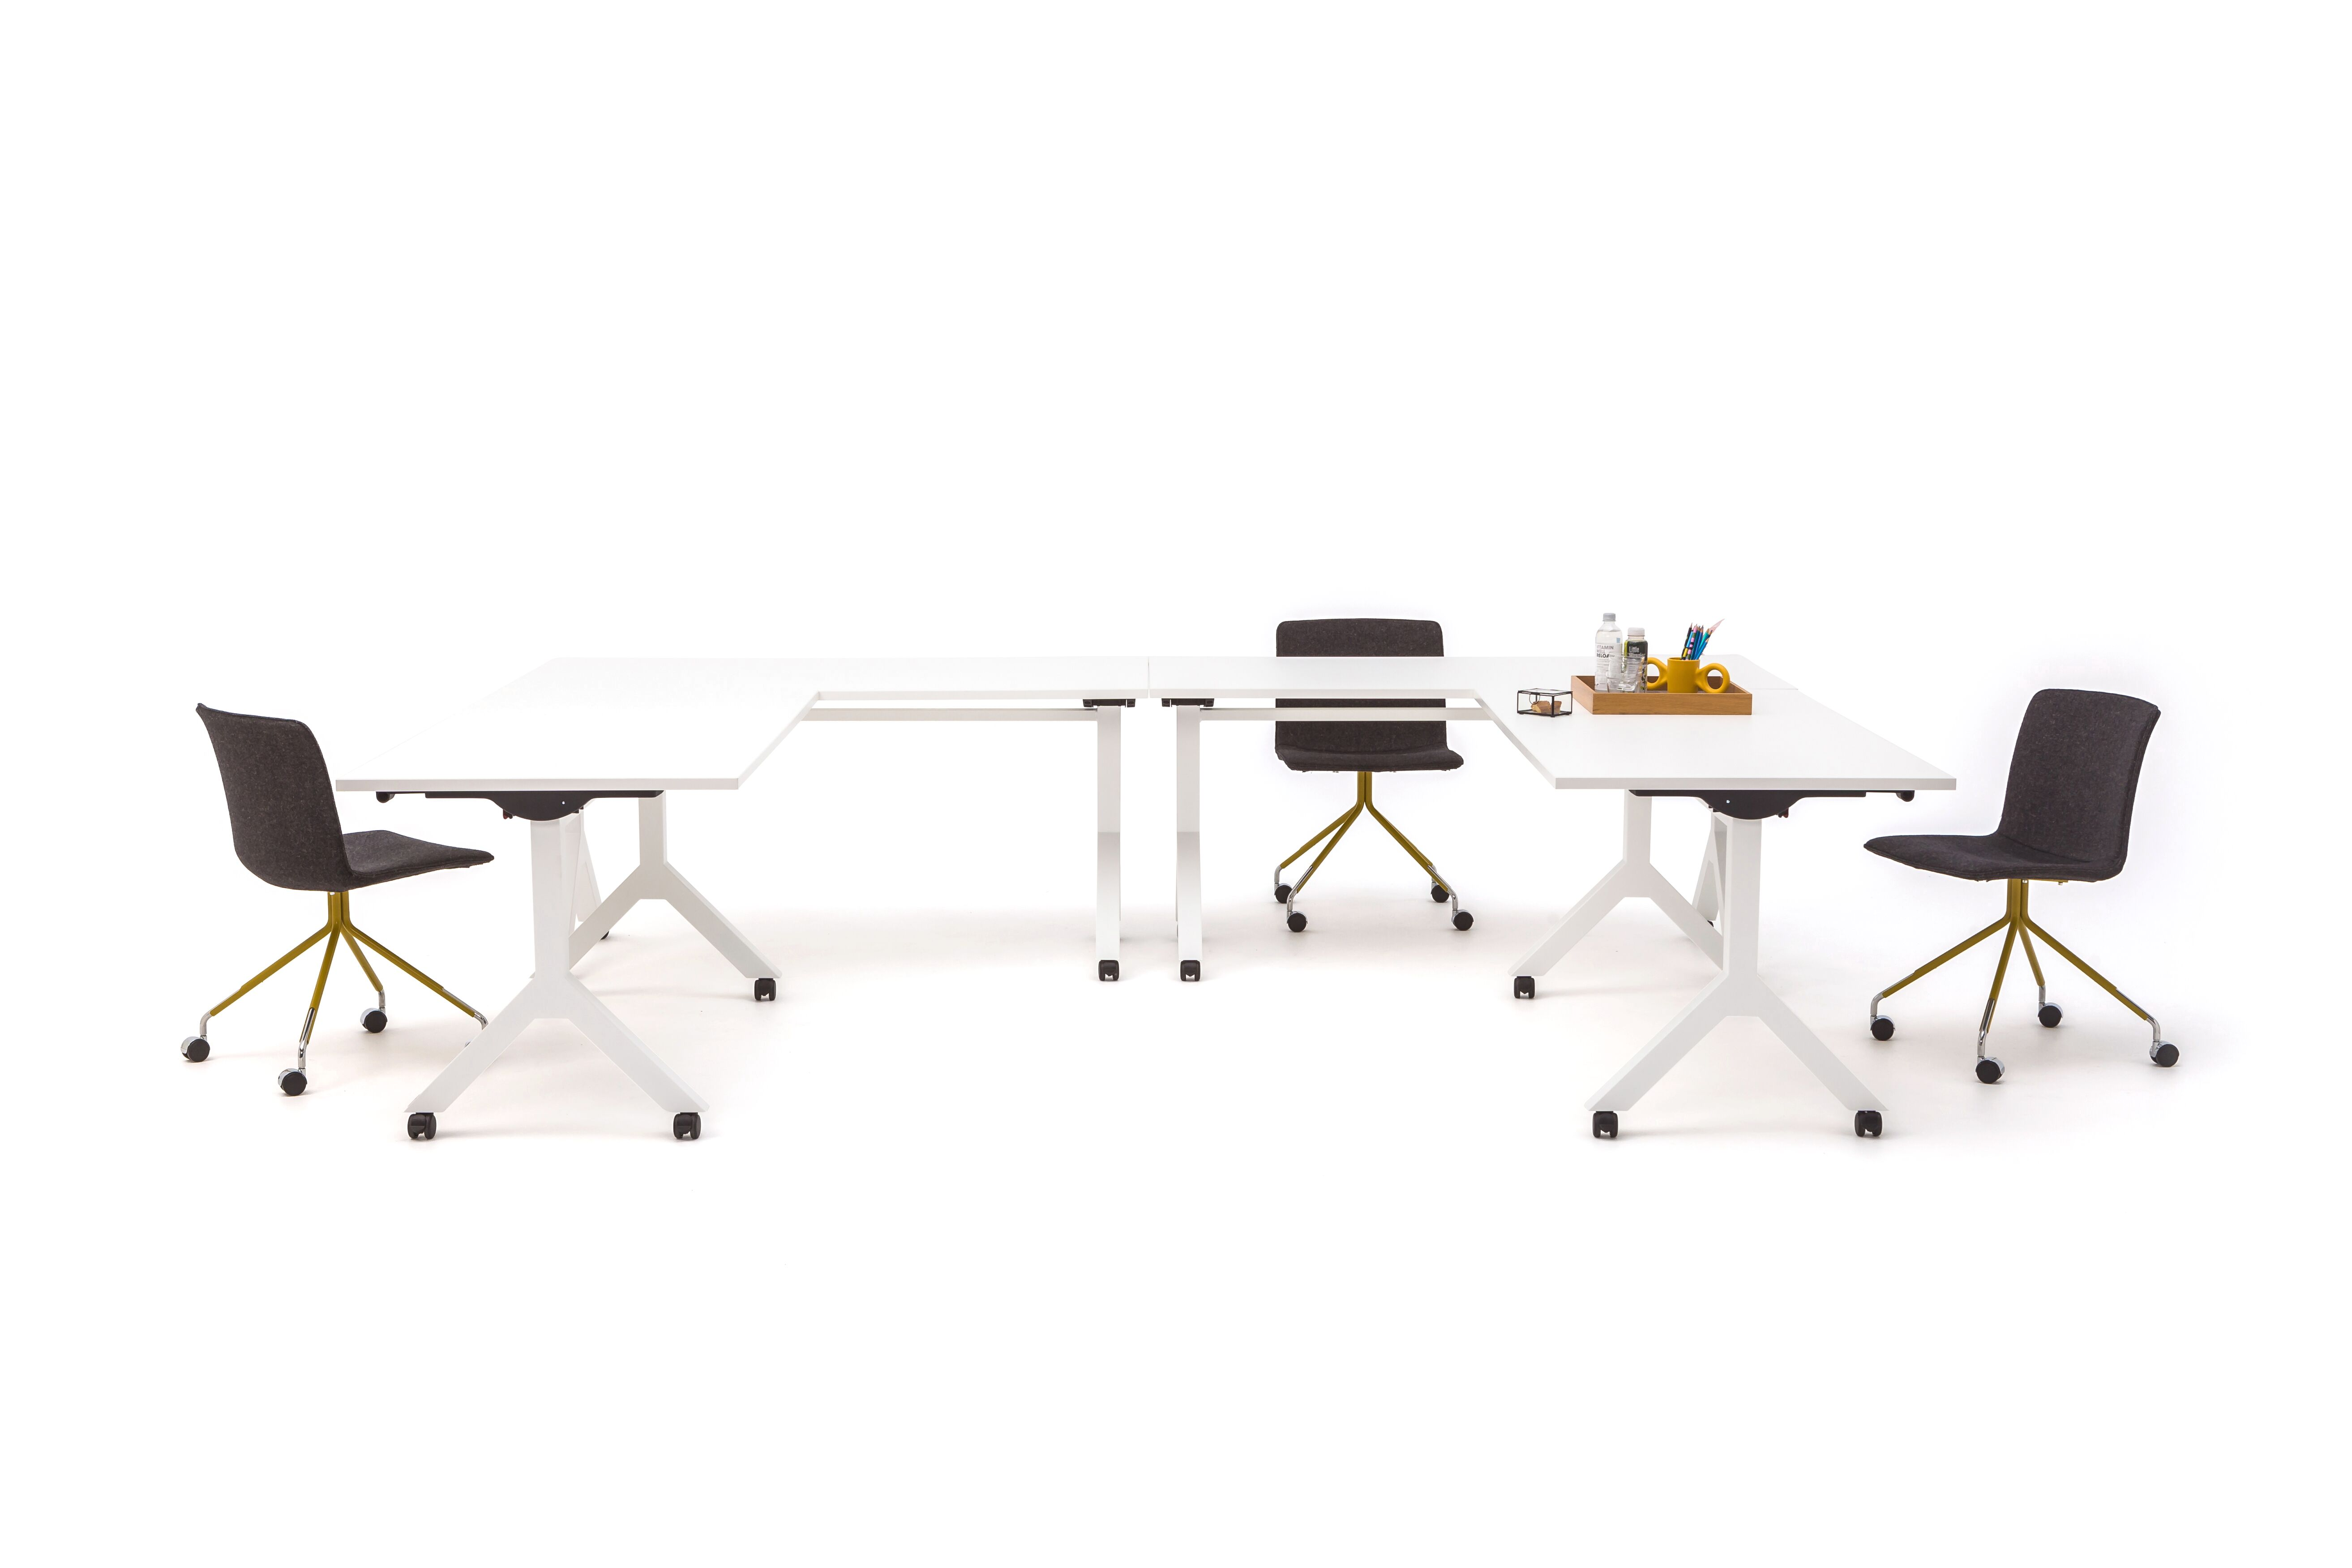 Gispen Dukdalf folding tables setup styled with nomi work and dombo